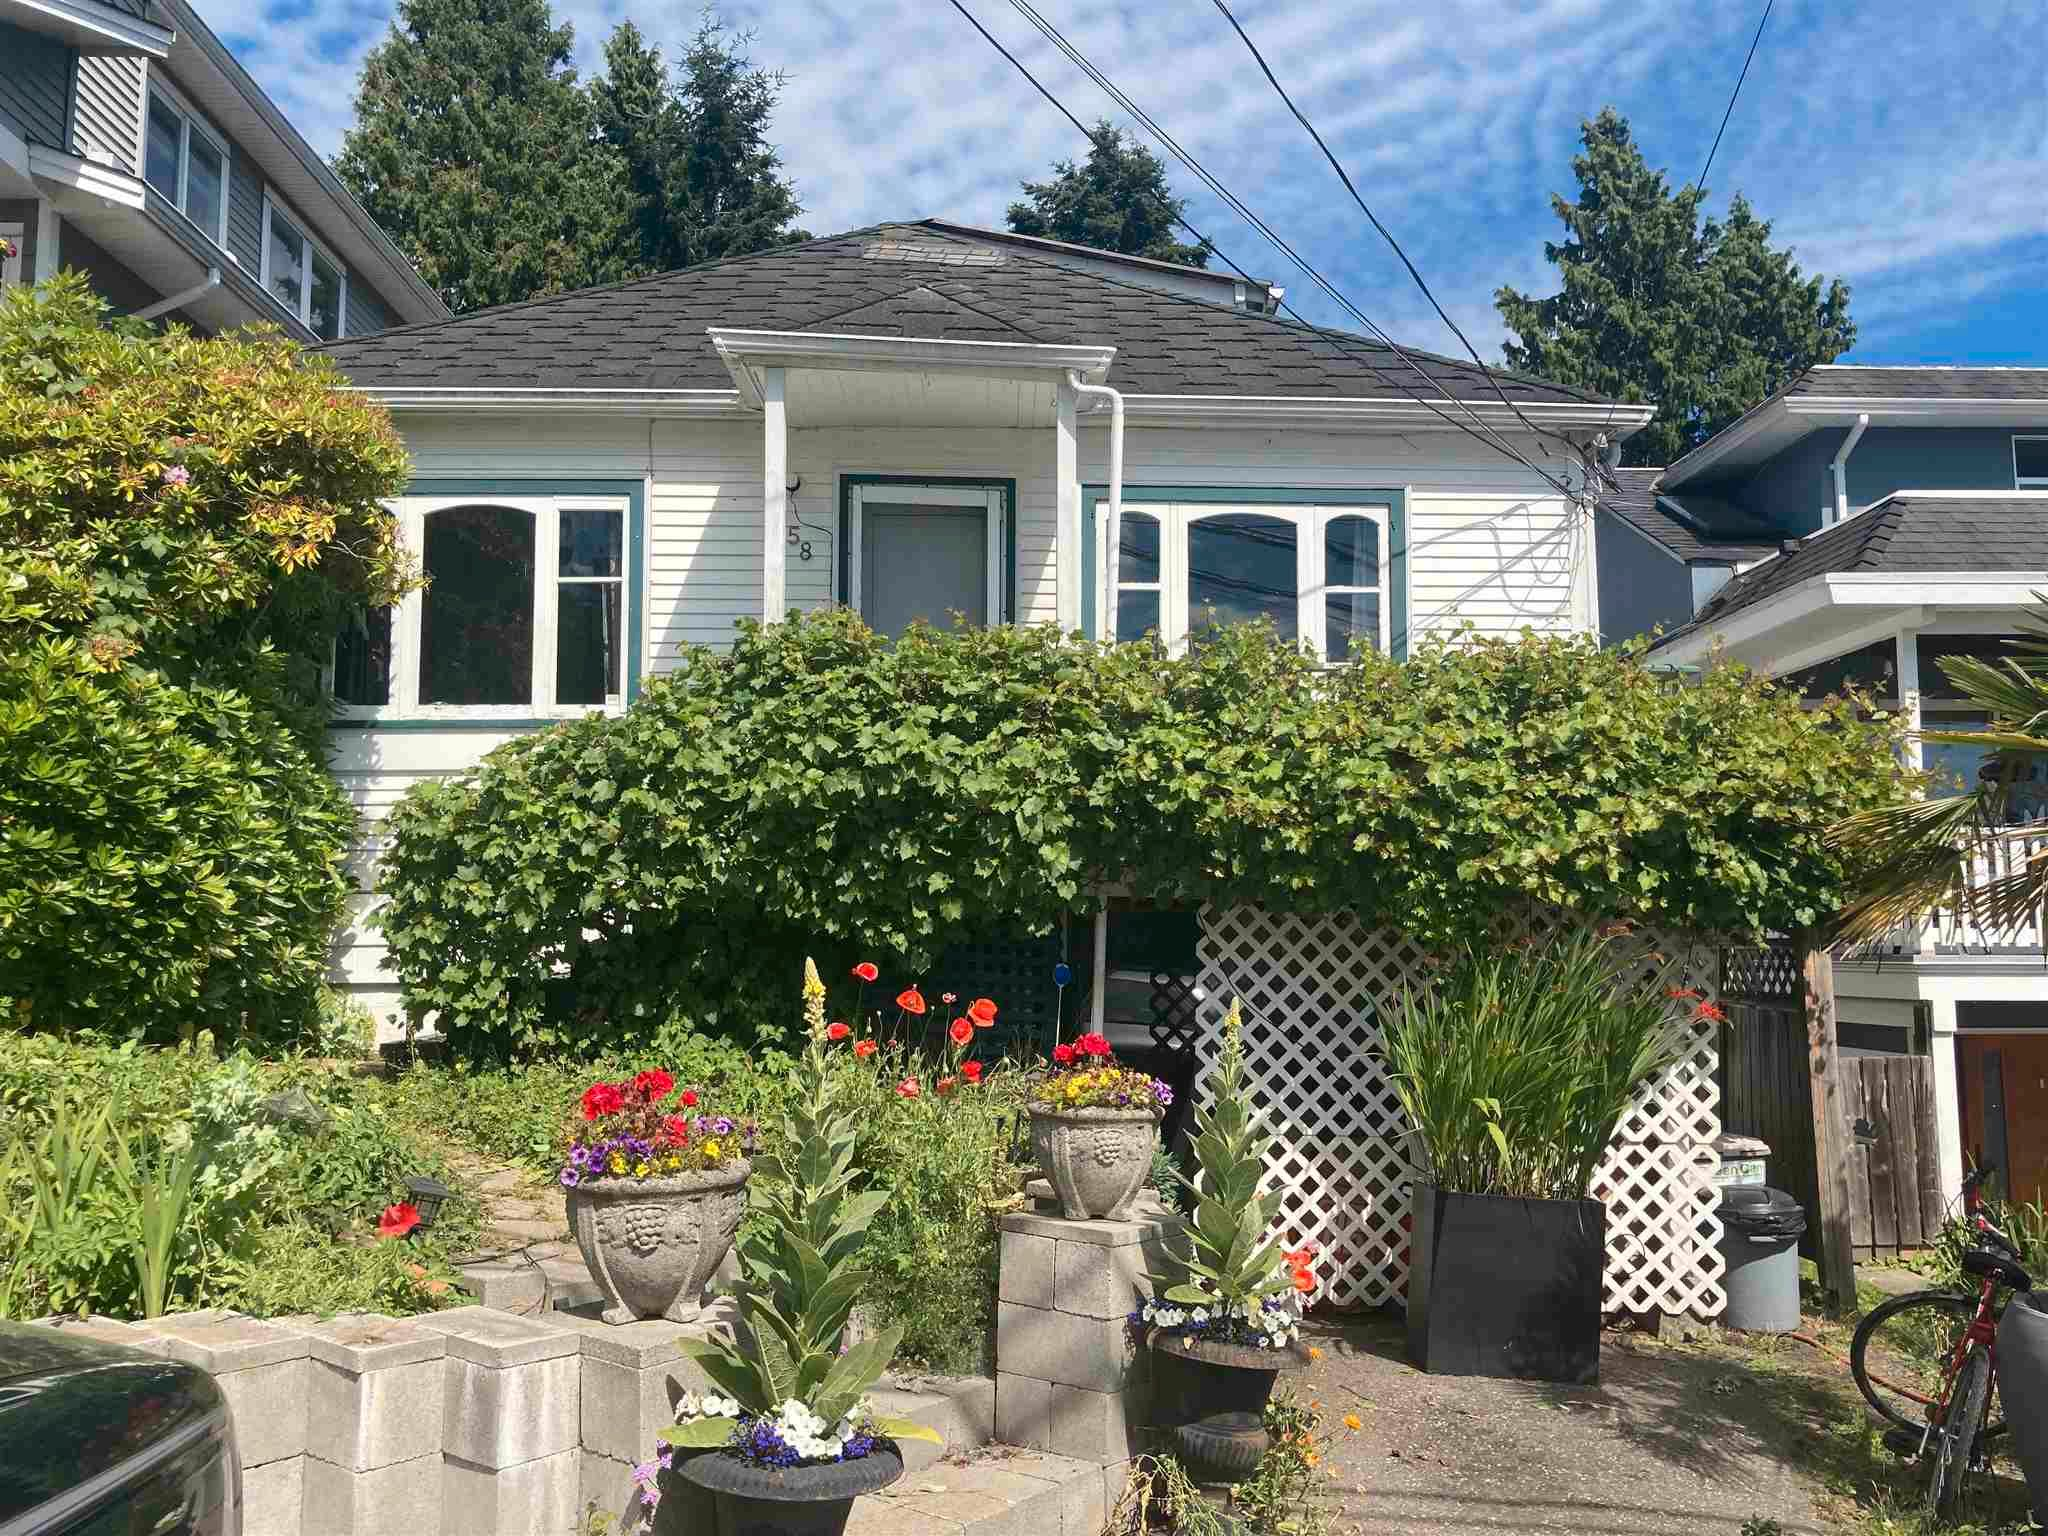 Main Photo: 958 LEE Street: White Rock House for sale (South Surrey White Rock)  : MLS®# R2595243